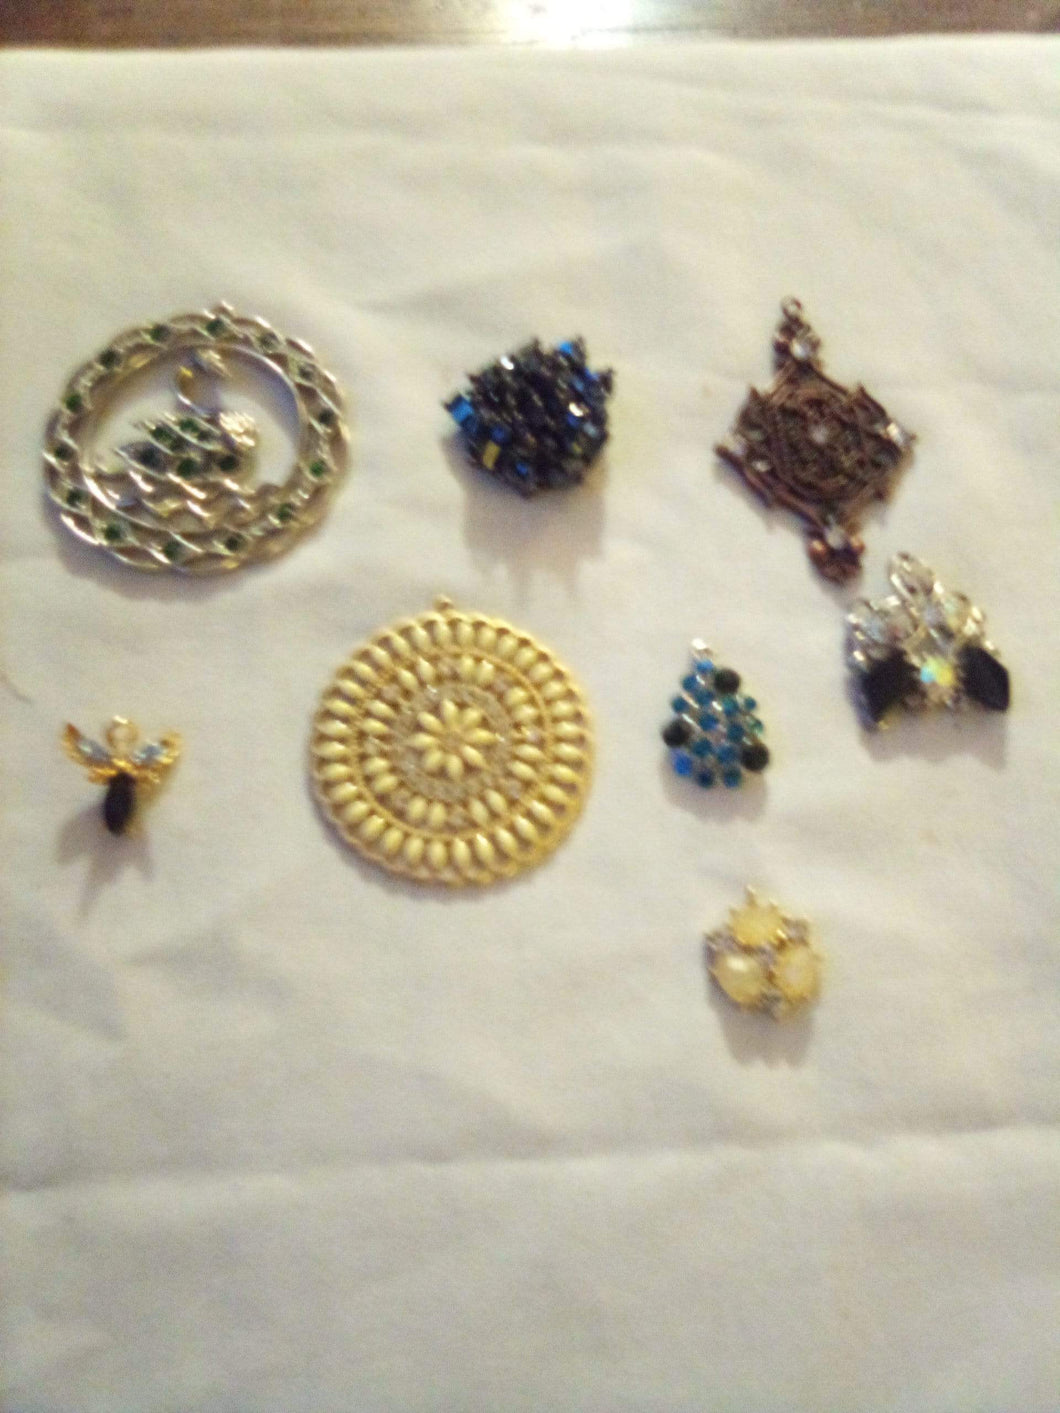 A nice lot of silver and gold tone pendents - B&P'sringsnthings